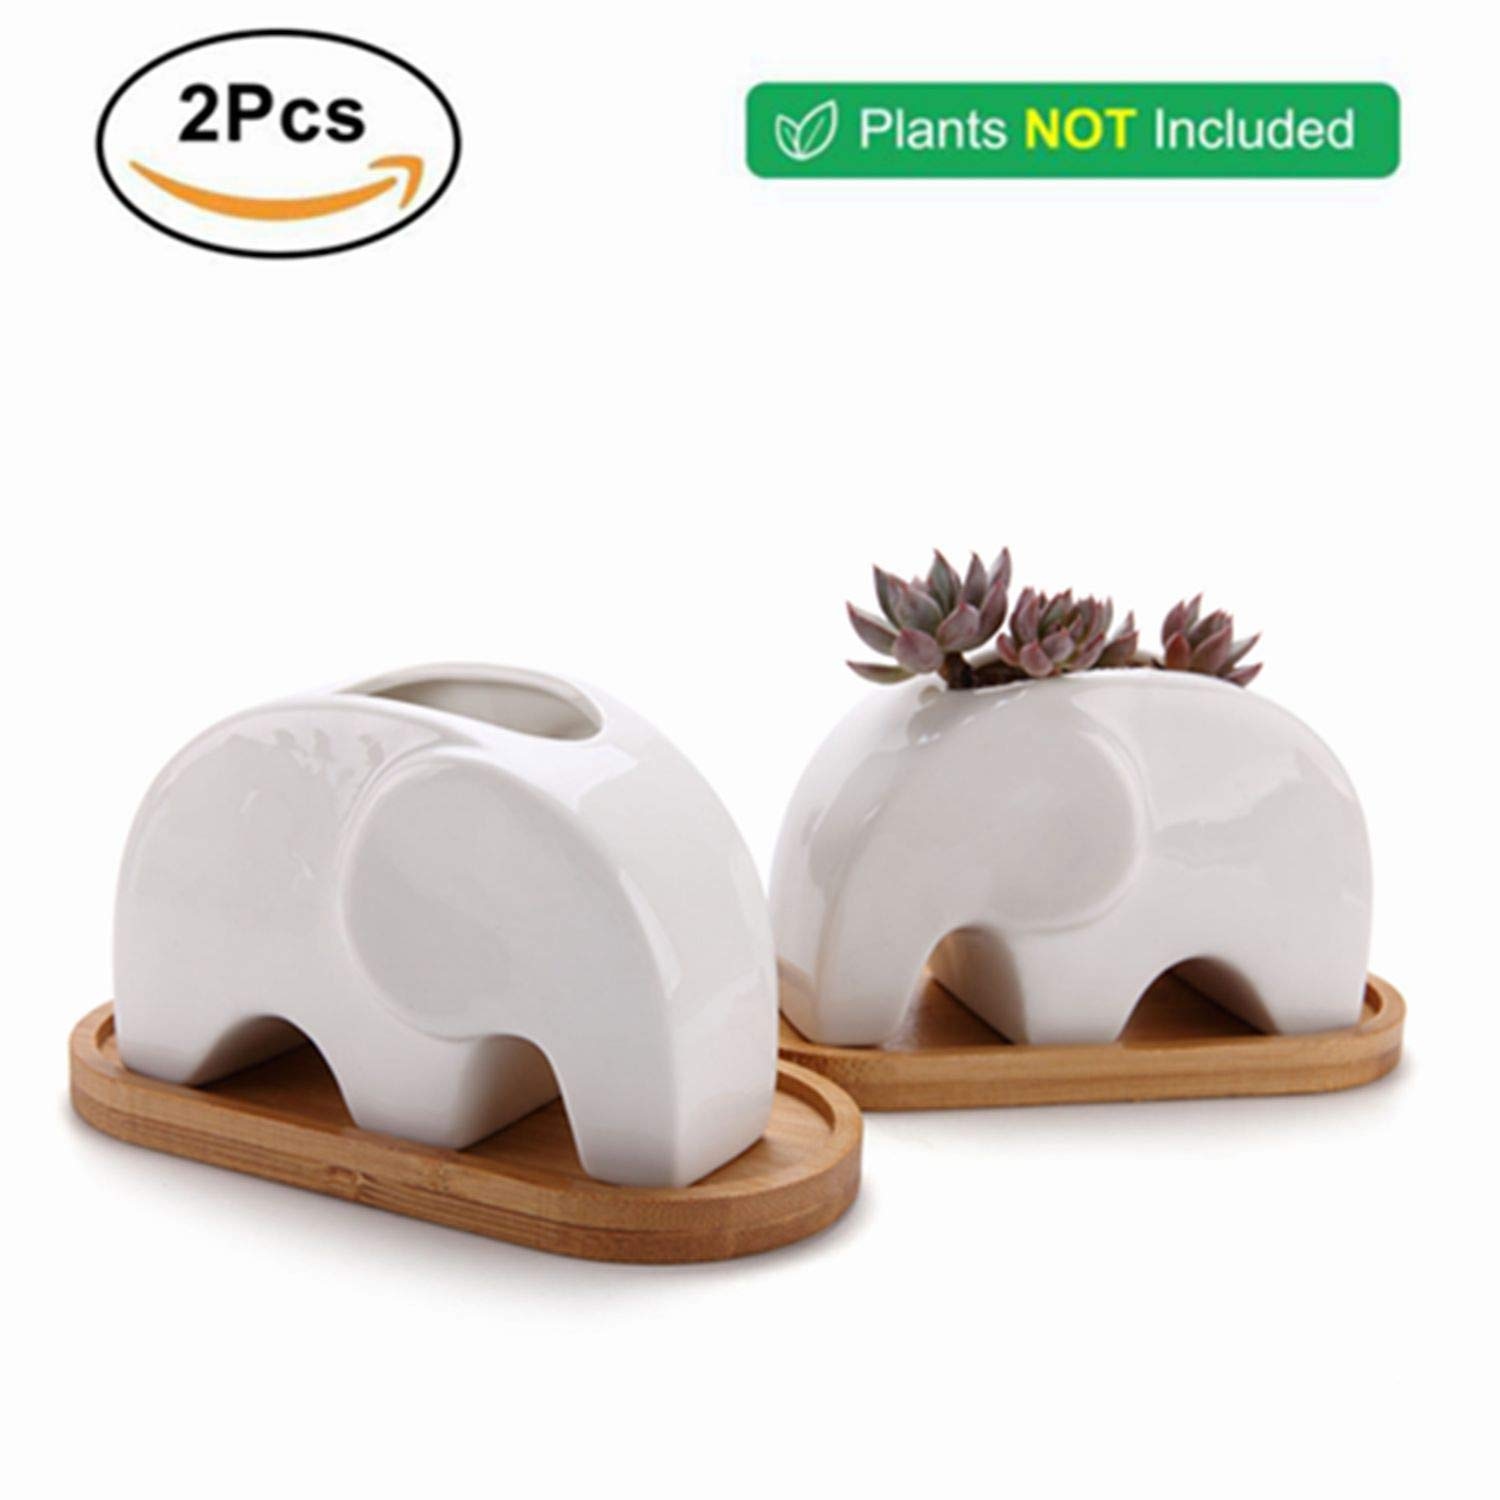 T4U Succulent Plant Pot Cactus Ceramic Planter with Bamboo Tray Pack of 2-4.8'' Elephant, Small Container White Animal Window Box Decorative Ornament Office Desktop Wedding Birthday by T4U (Image #5)